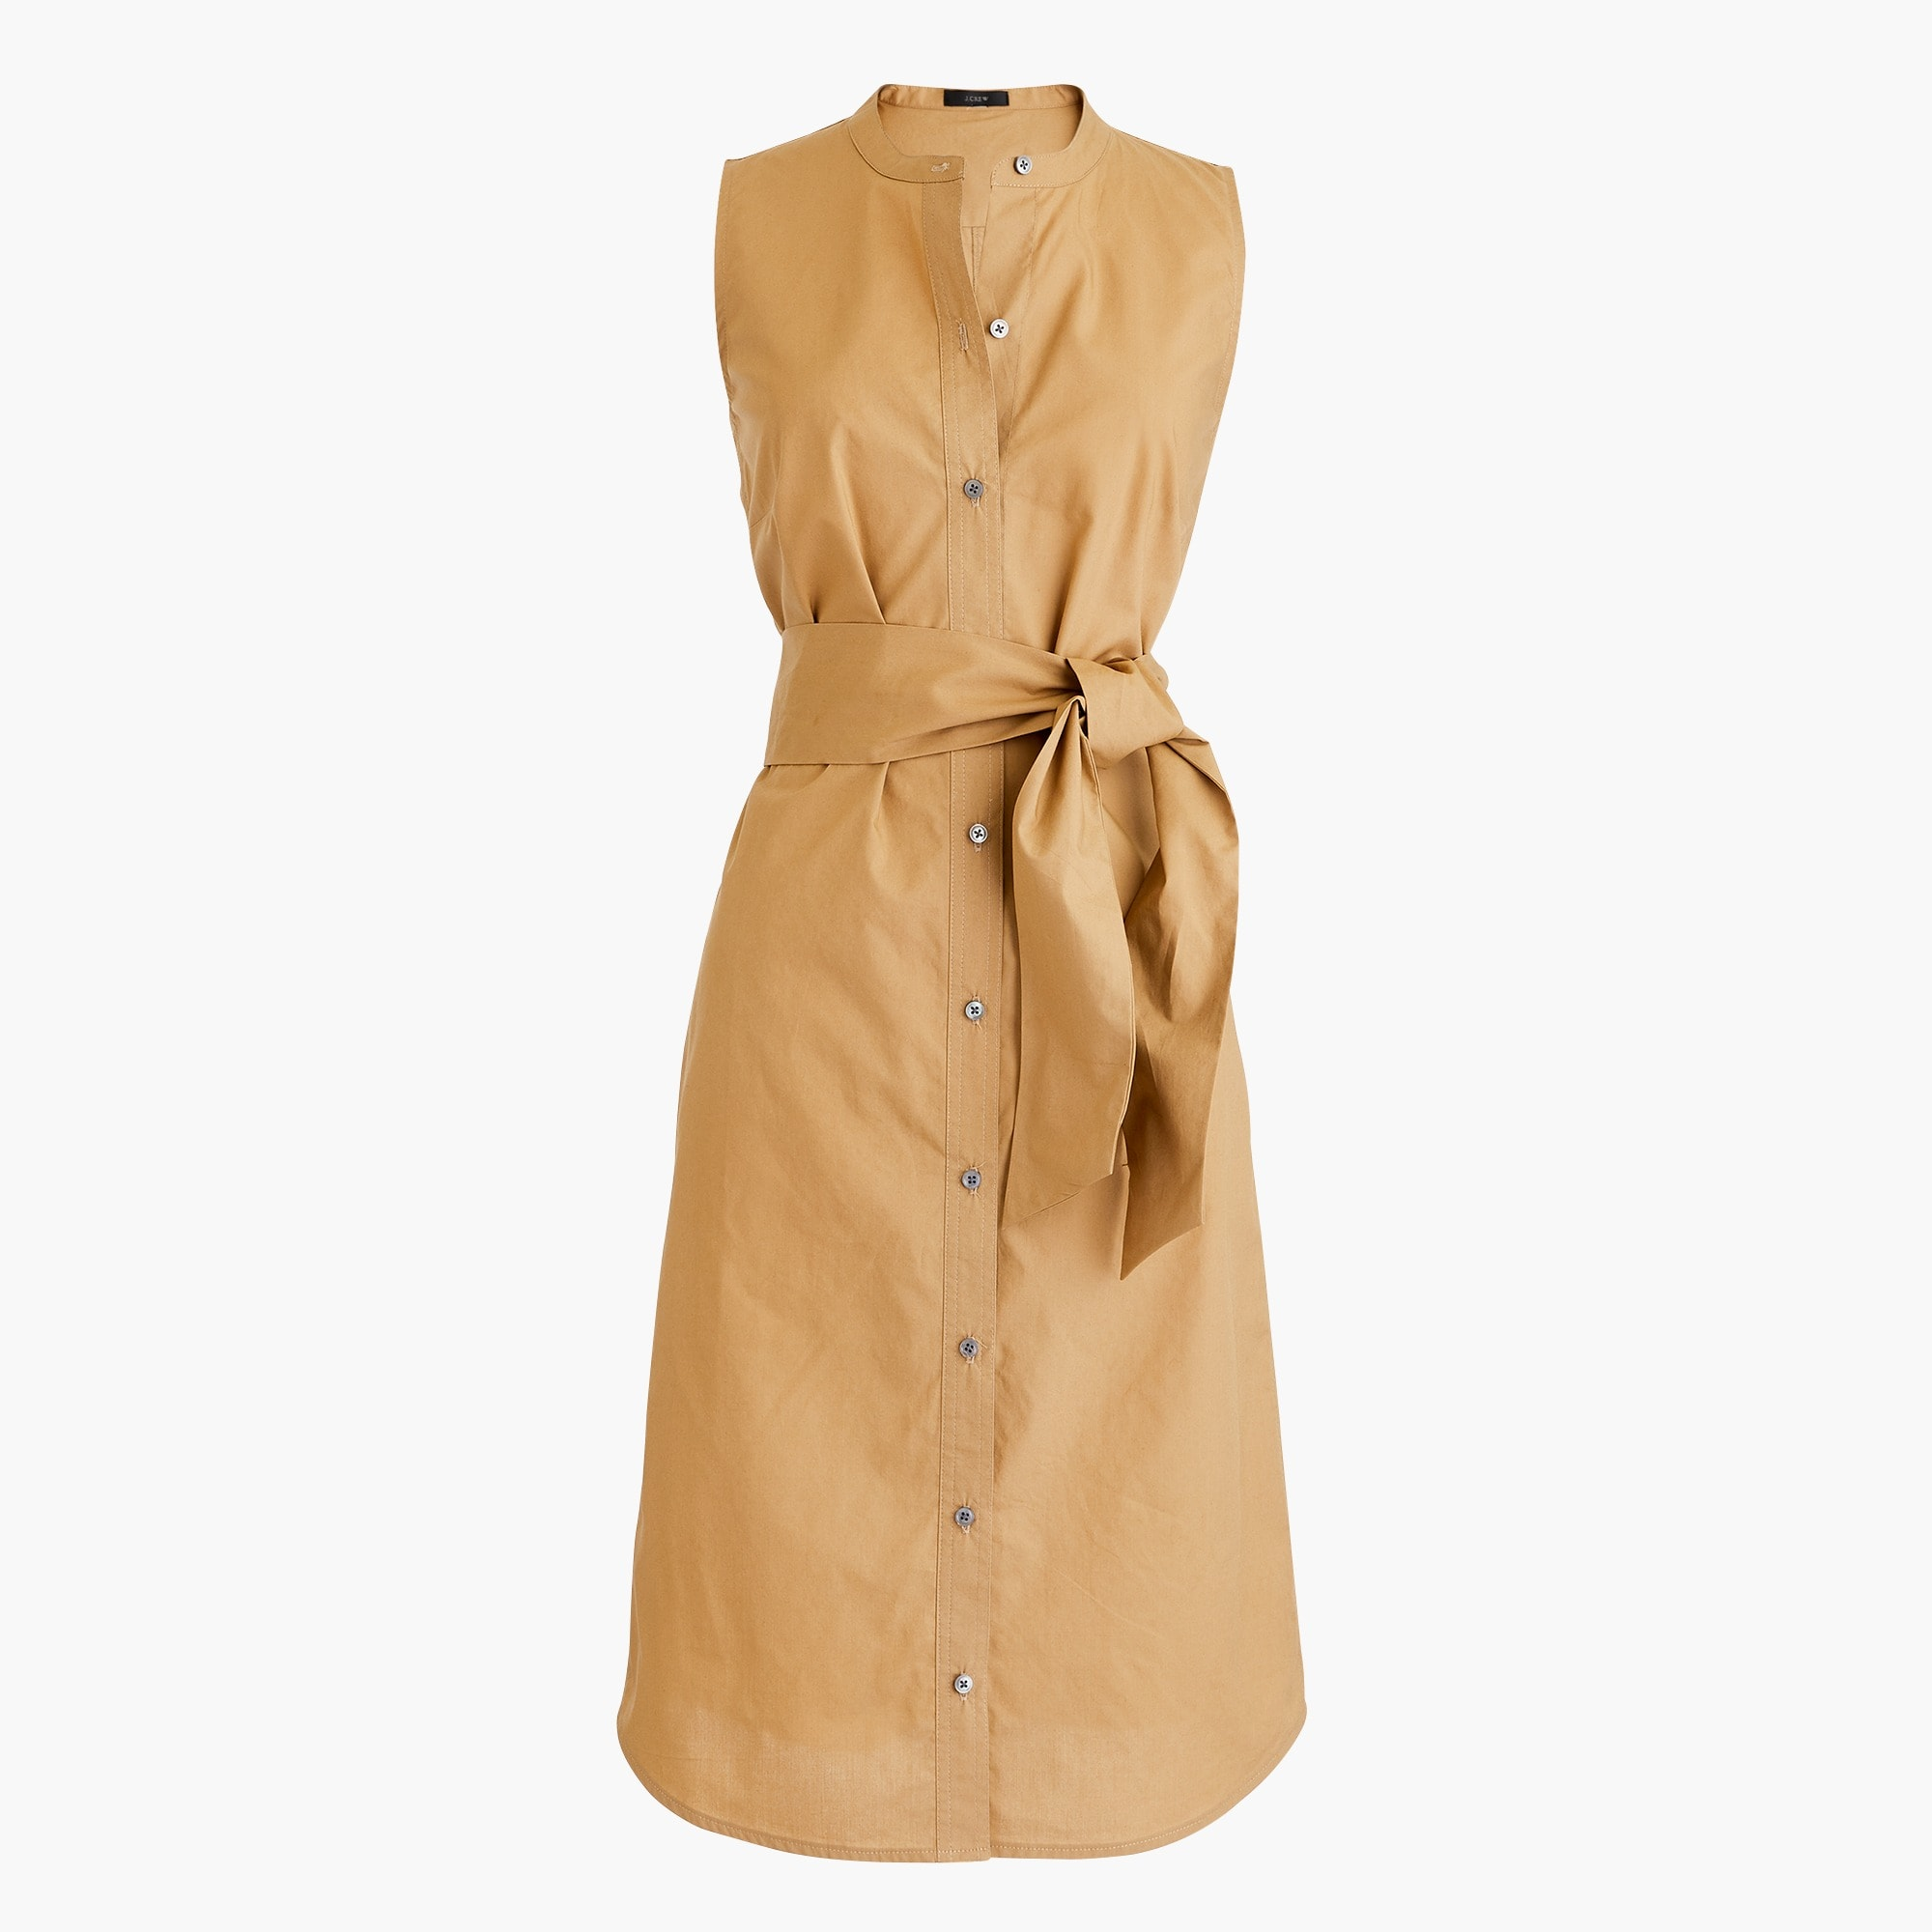 Image 1 for Tall sleeveless shirtdress in cotton poplin